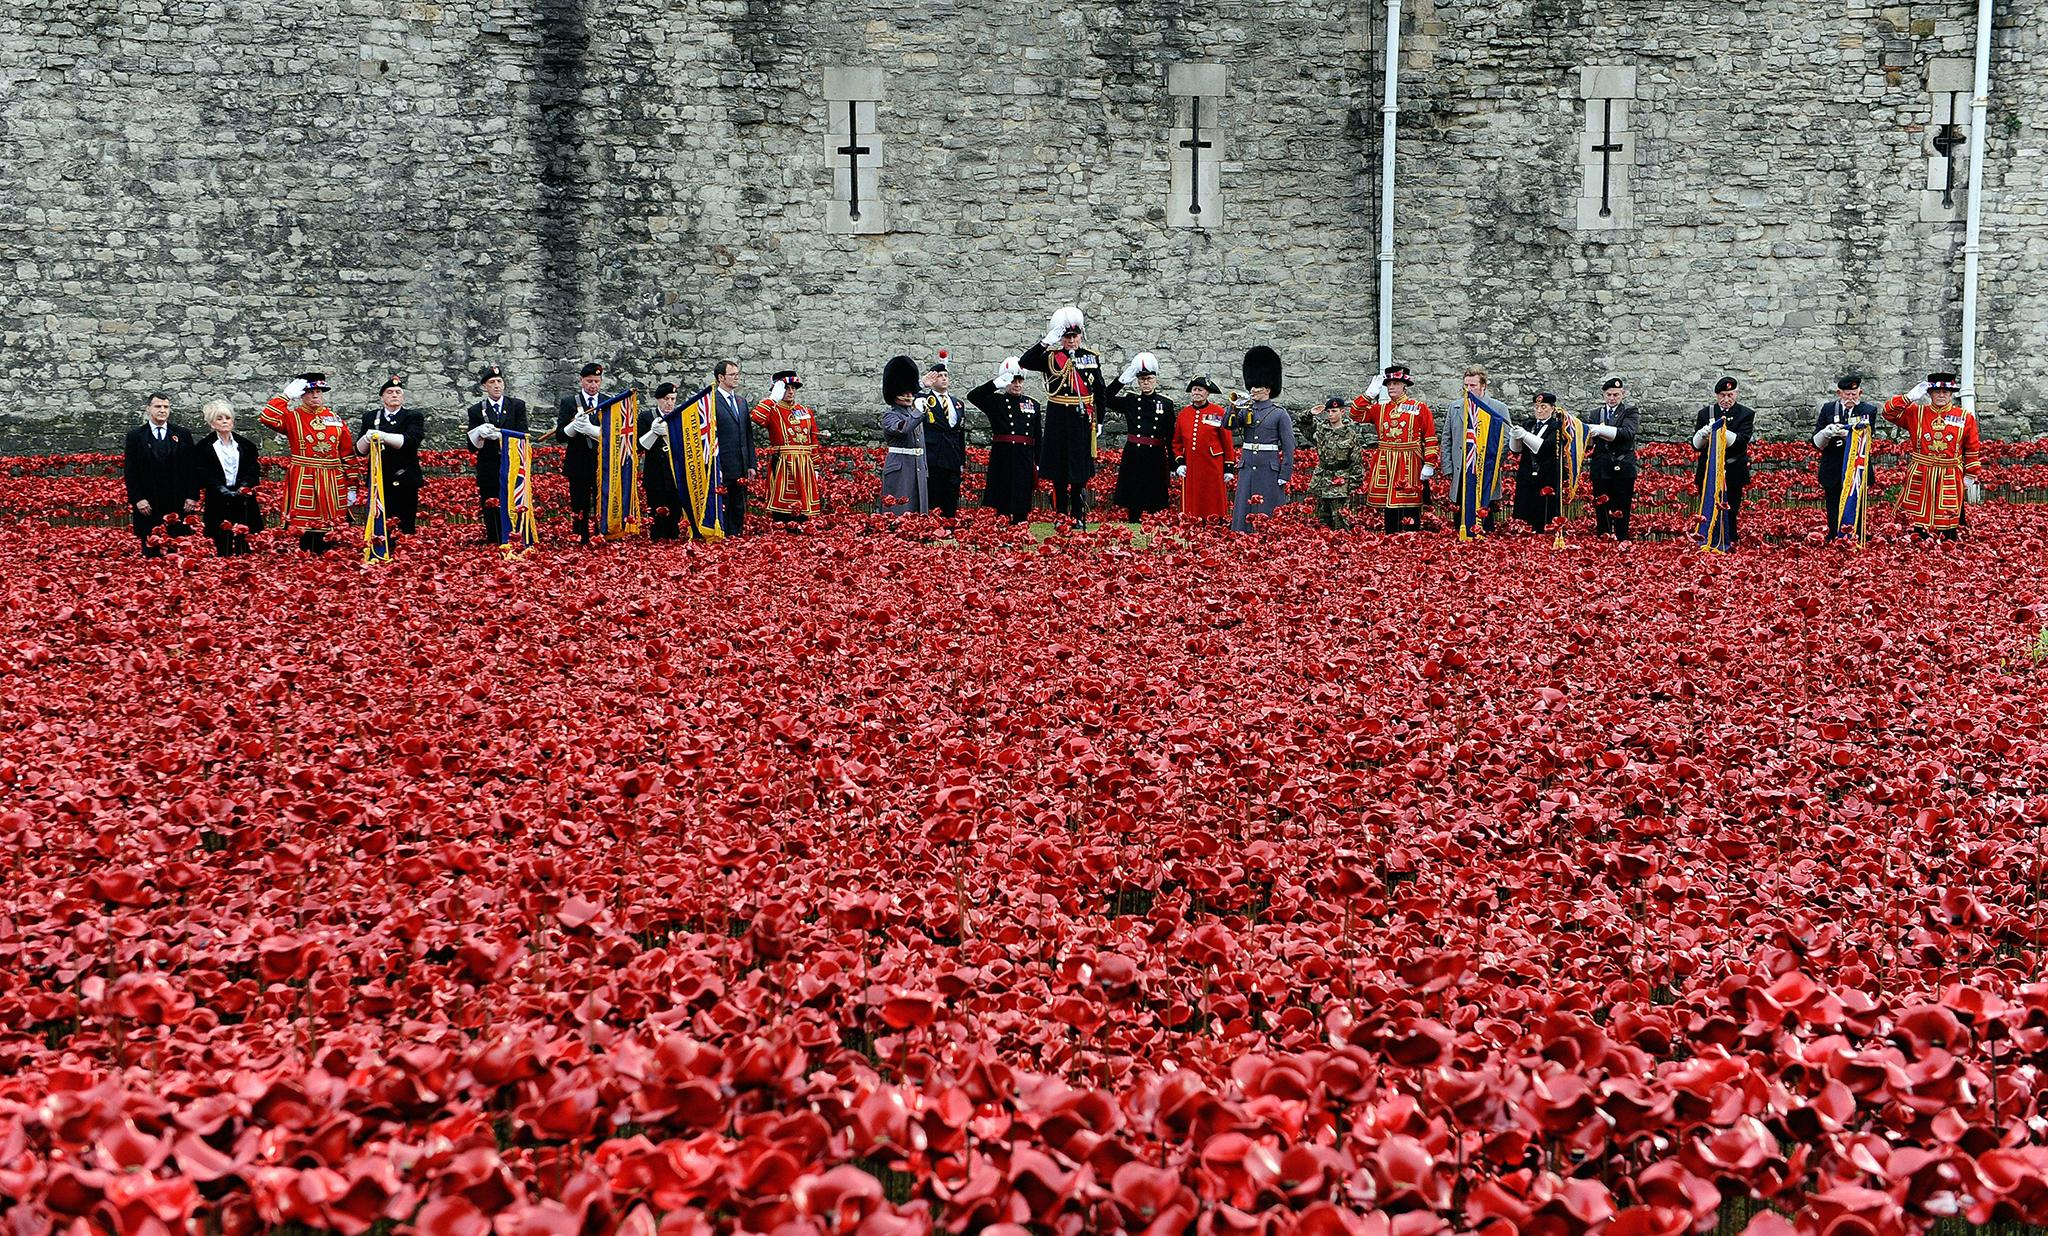 The LGBT community put themselves in the firing line for Britain – of course there should be a rainbow poppy